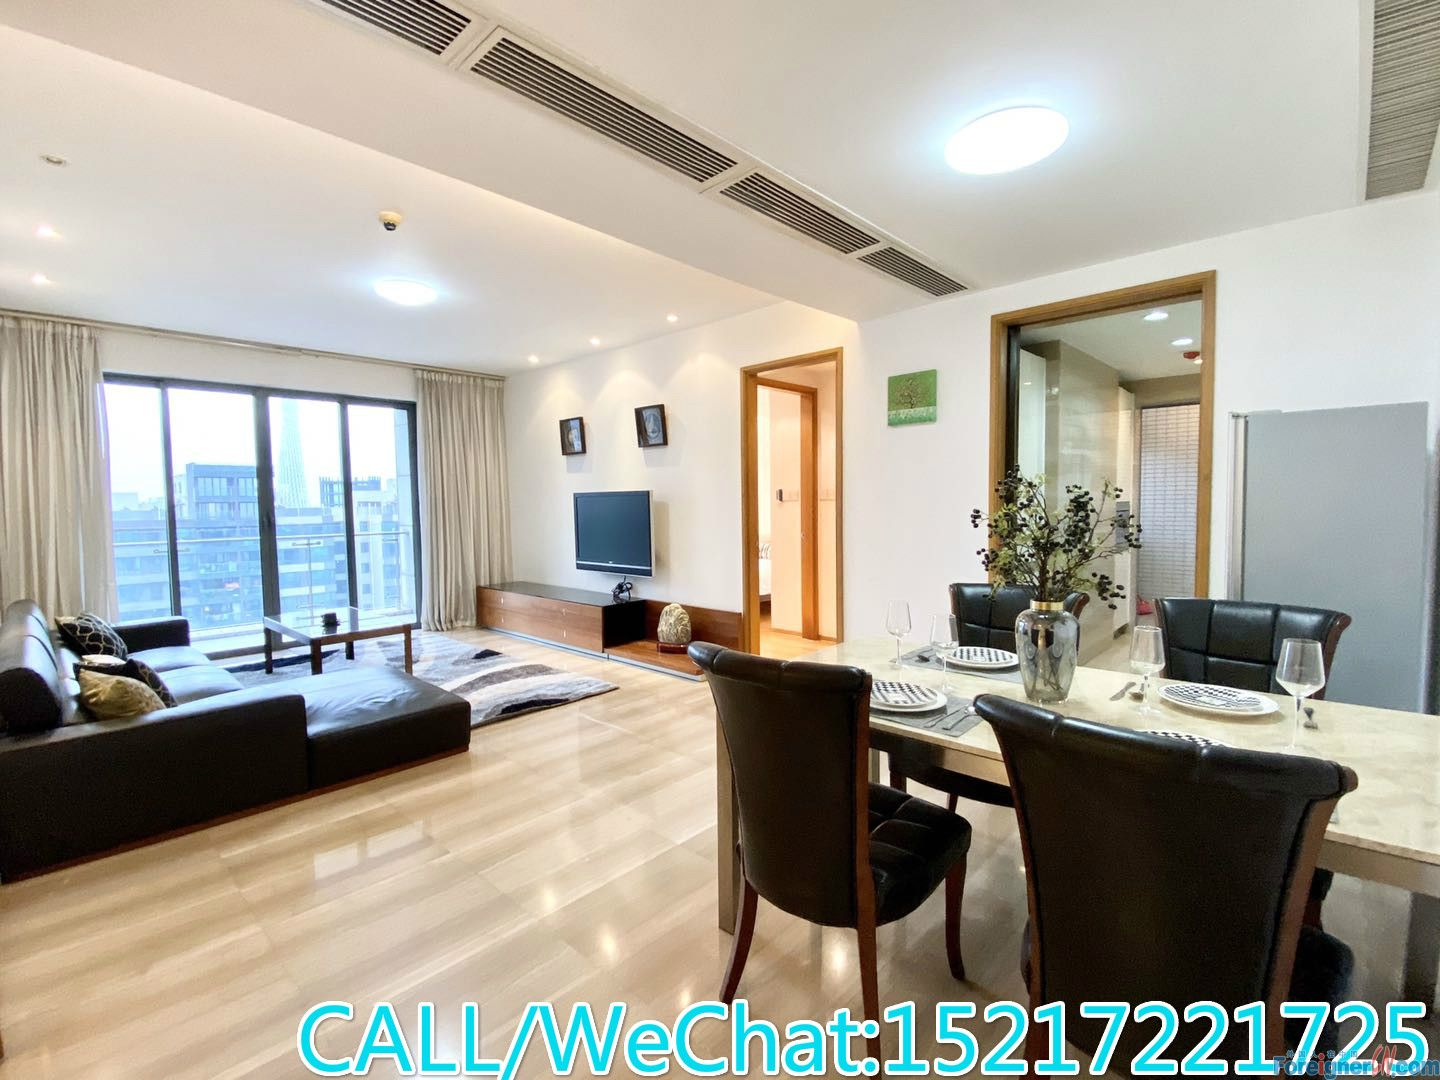 J-LIVING-Morden decorated 3brs,high floor,wide view,CBD AREA,Super Convenient.